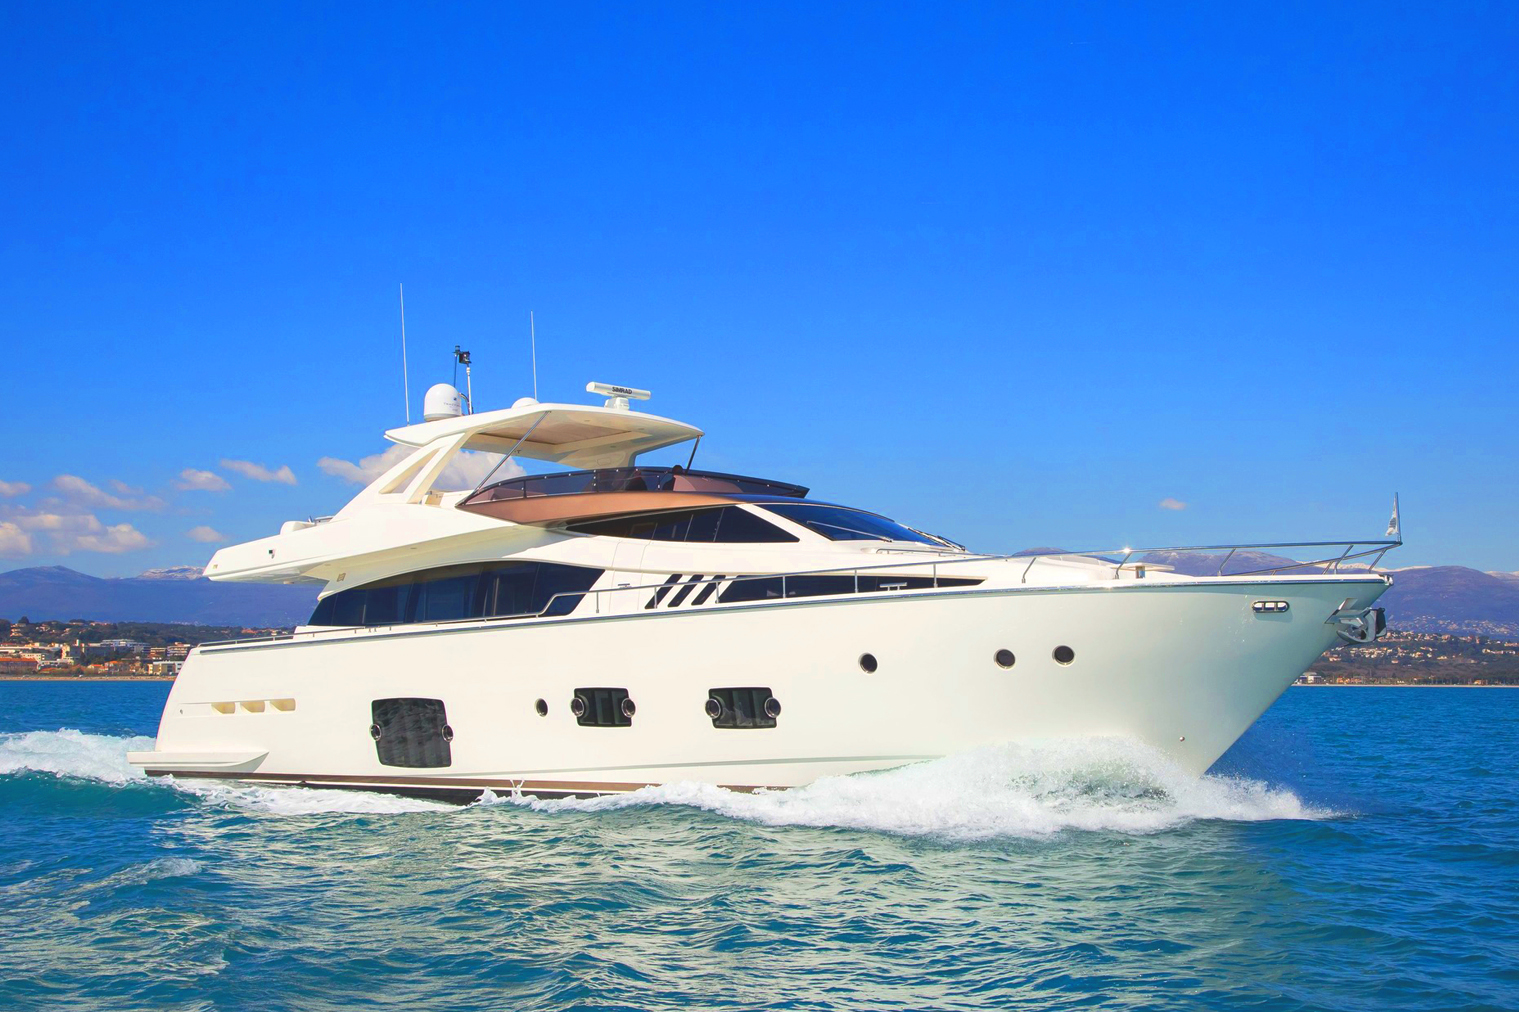 78 Ft – Queen Tracey Yacht